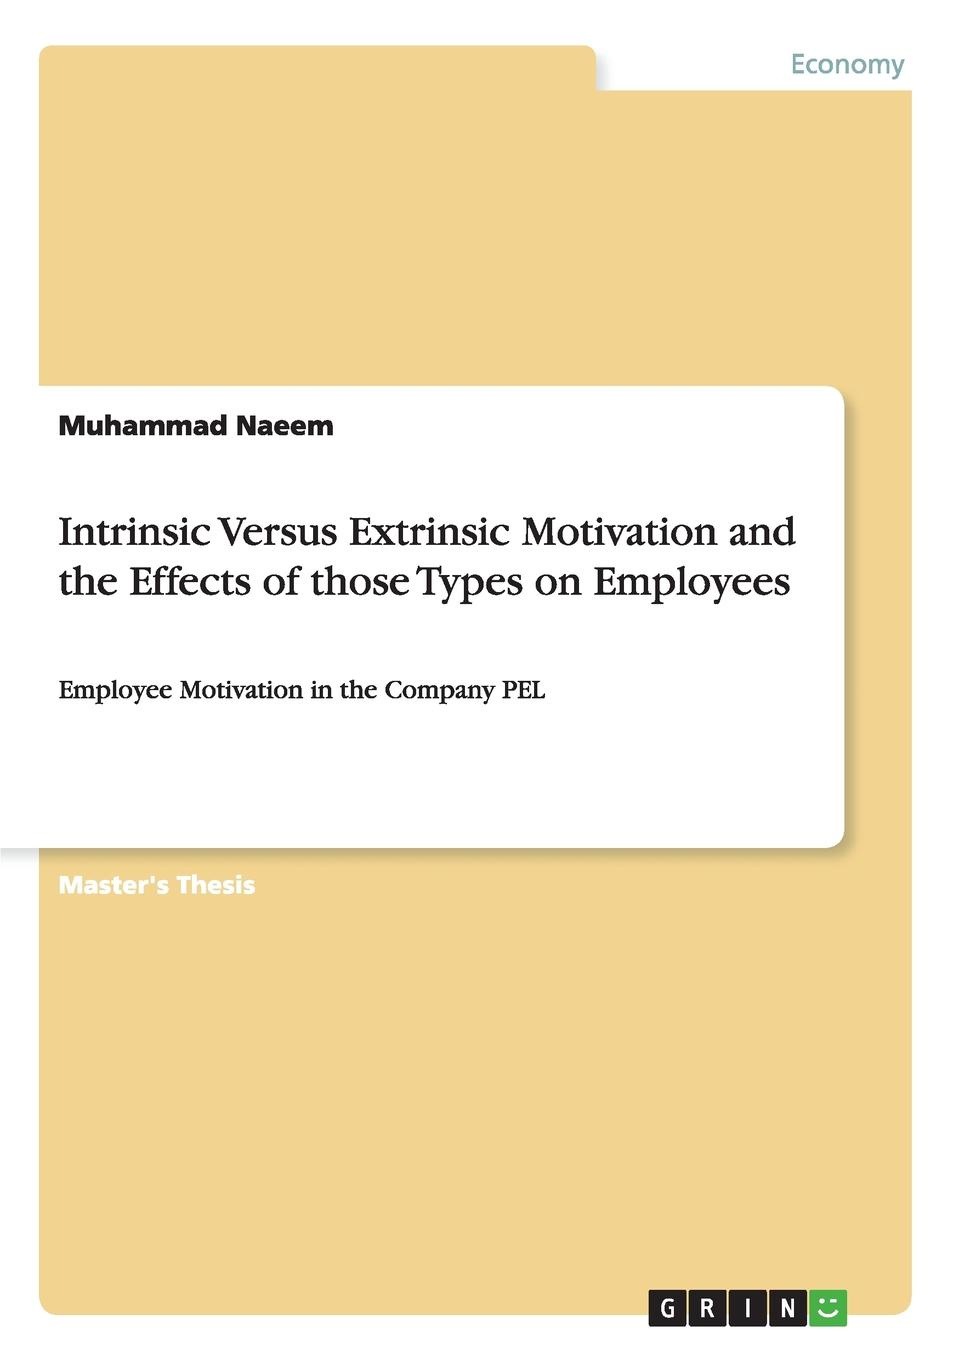 Muhammad Naeem Intrinsic Versus Extrinsic Motivation and the Effects of those Types on Employees motivation and action